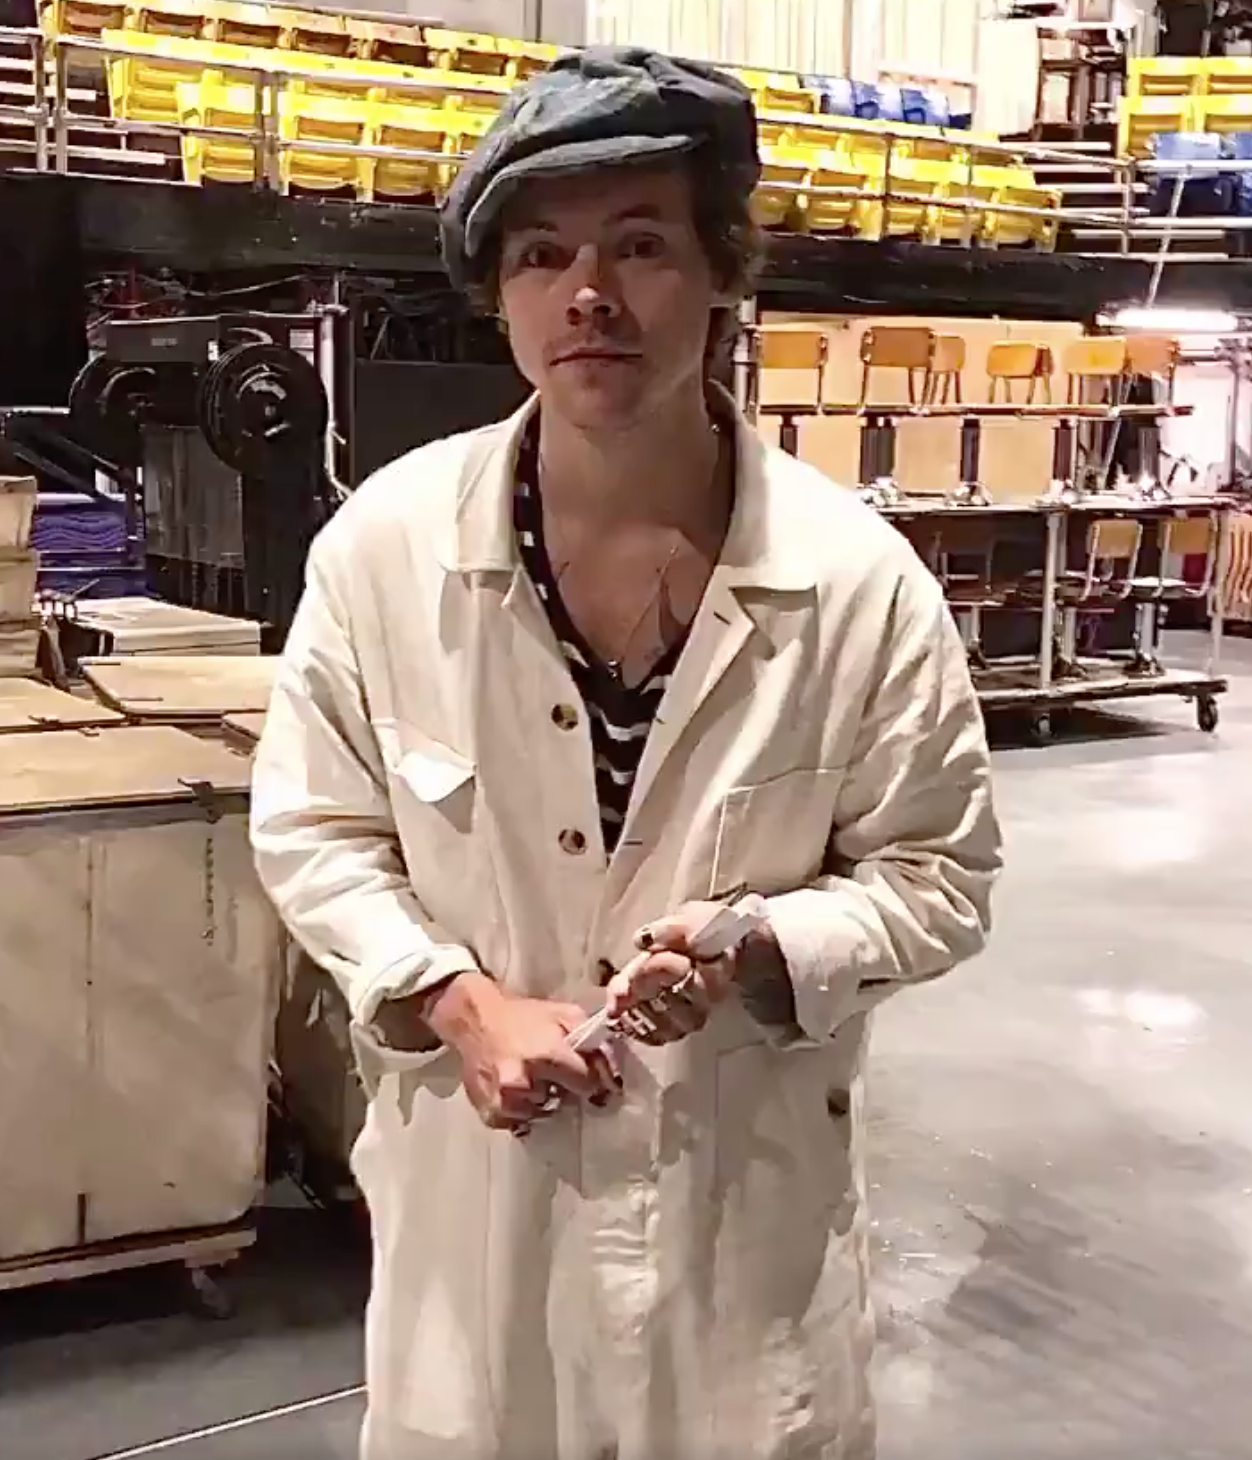 WATCH: Harry Styles is Not About Social Media